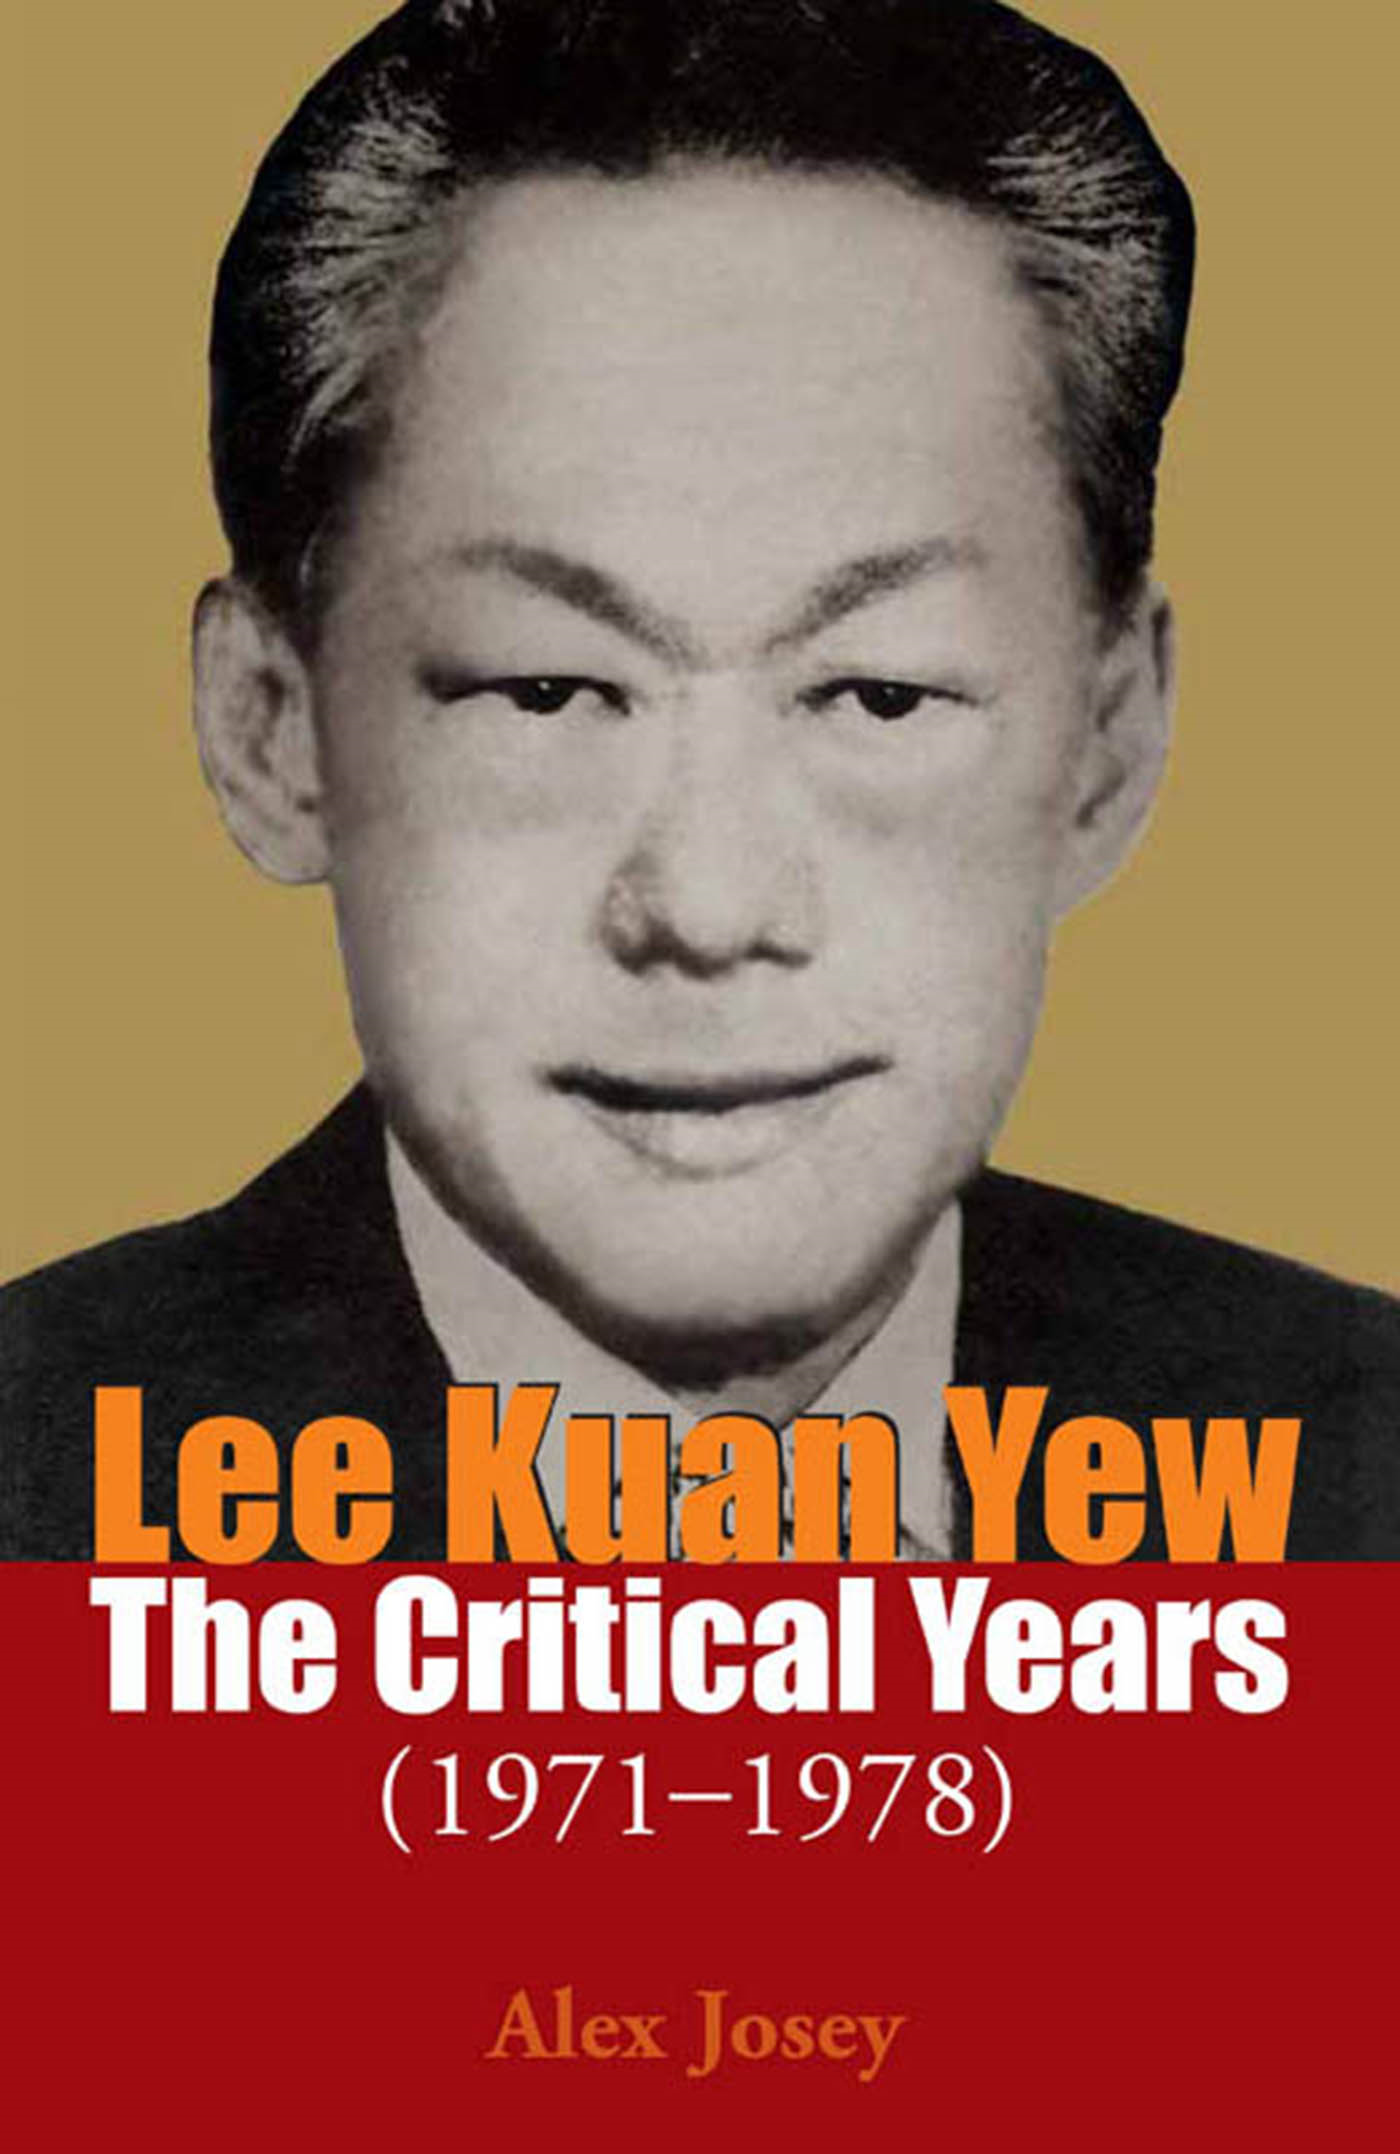 Lee Kuan Yew: The Critical Years 1971-1978